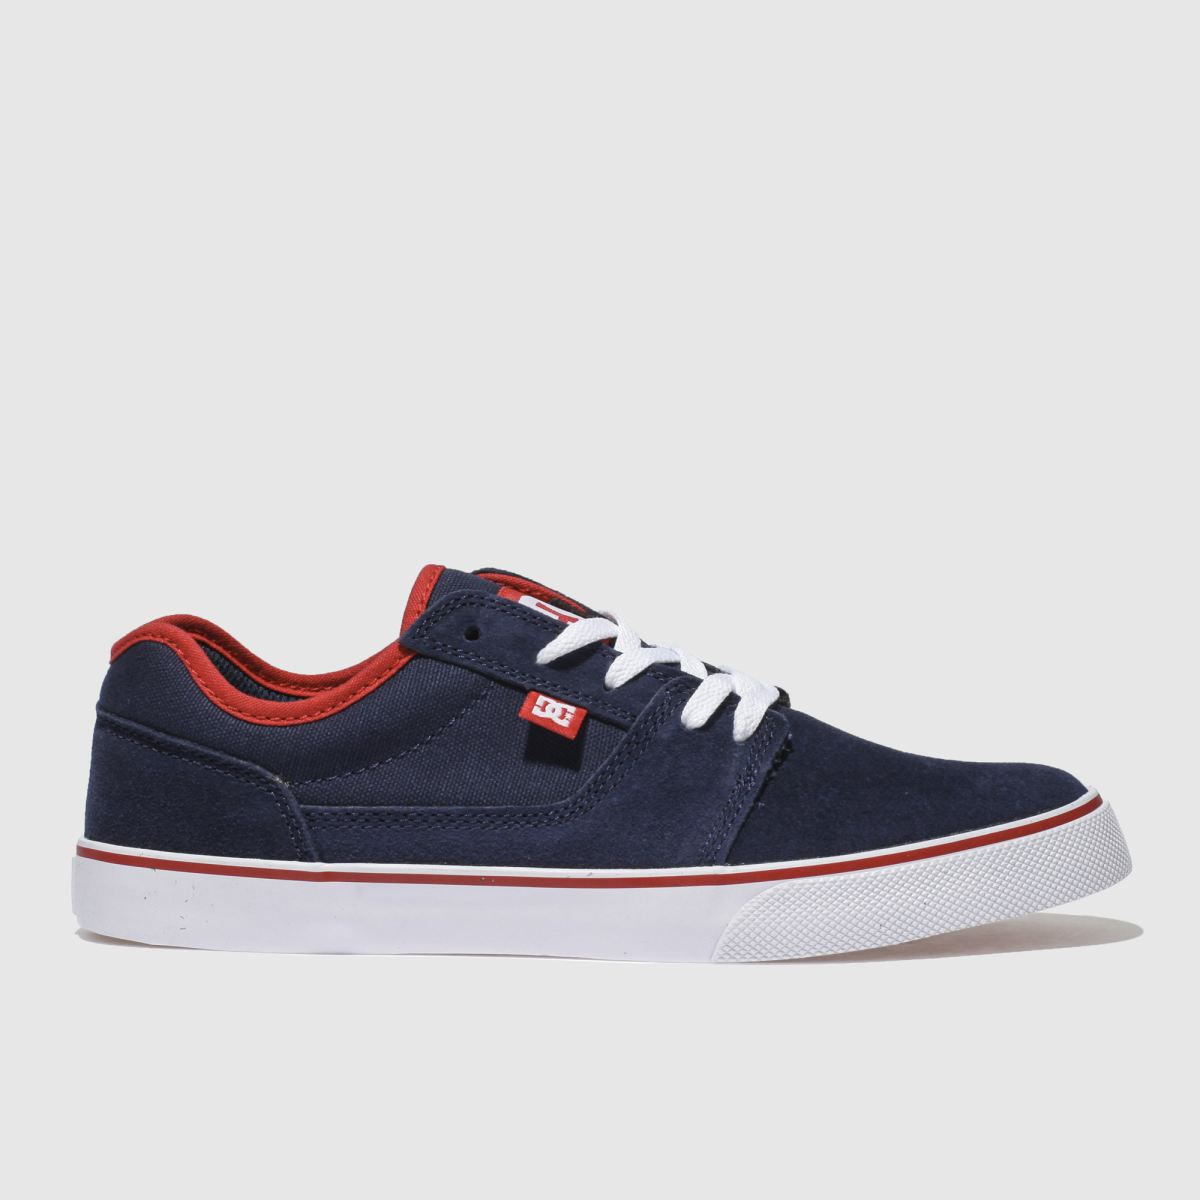 dc shoes Dc Shoes Navy & Red Tonik Trainers